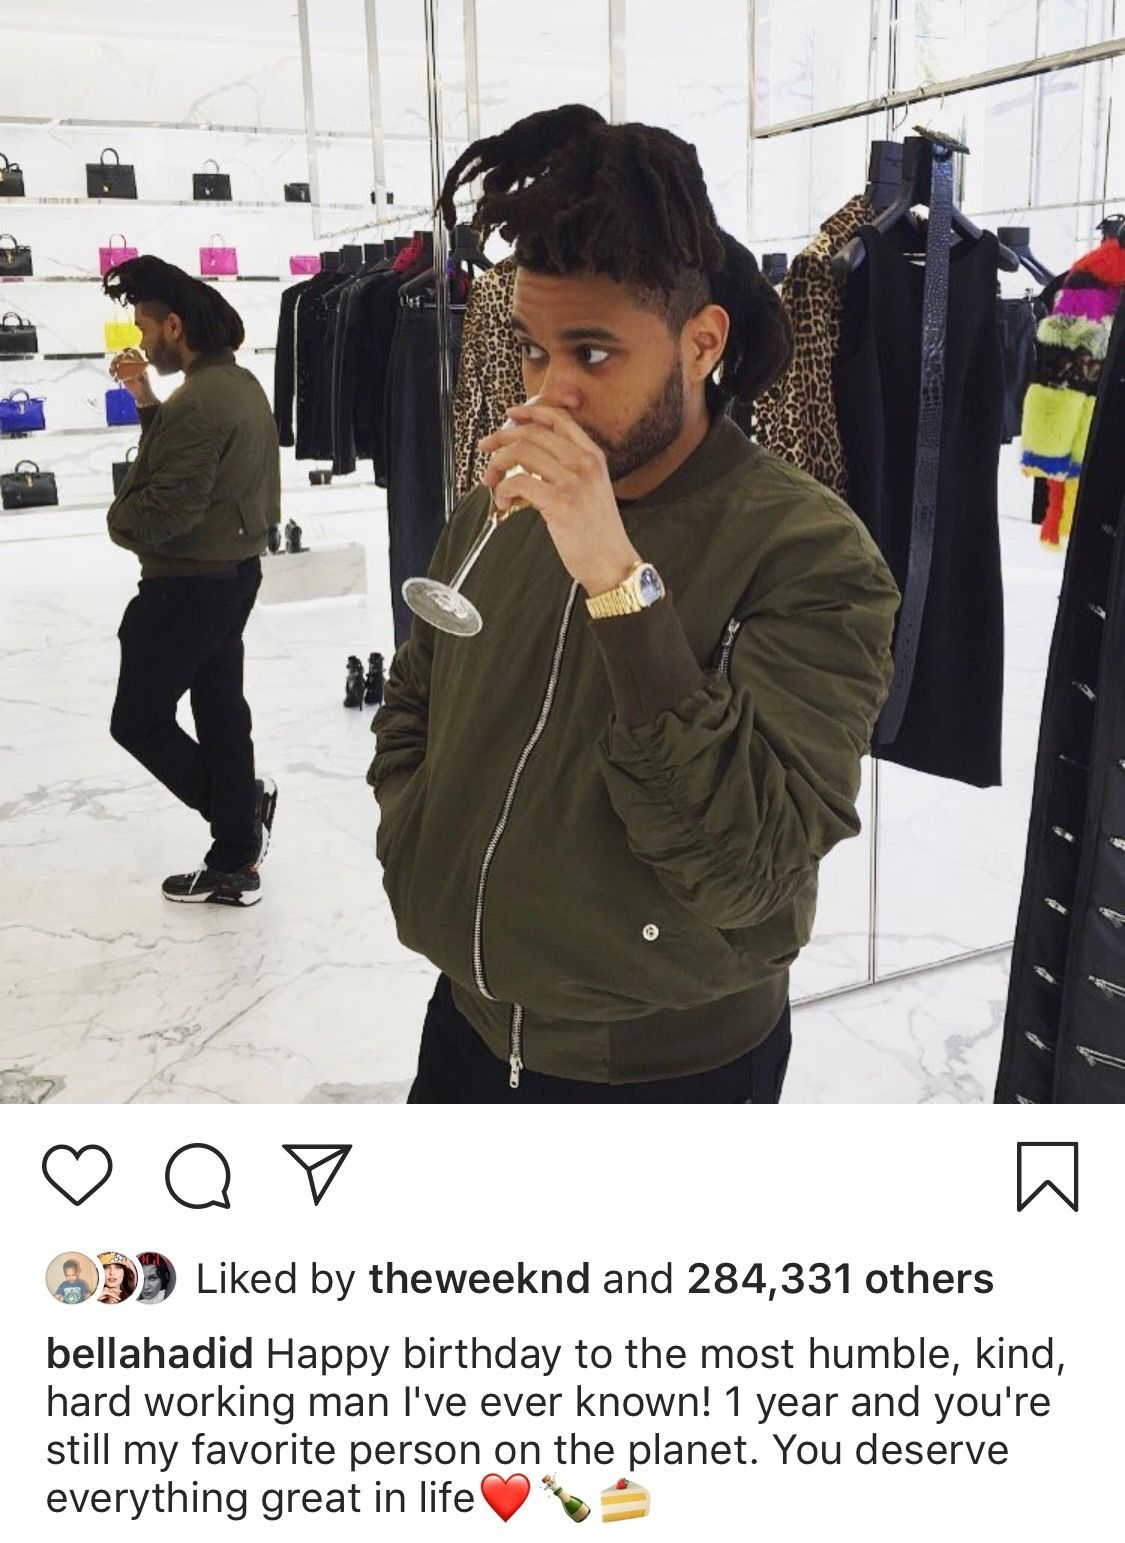 Pin By Elenor On The Weeknd Bomber Jacket Raincoat Fashion [ 1543 x 1125 Pixel ]